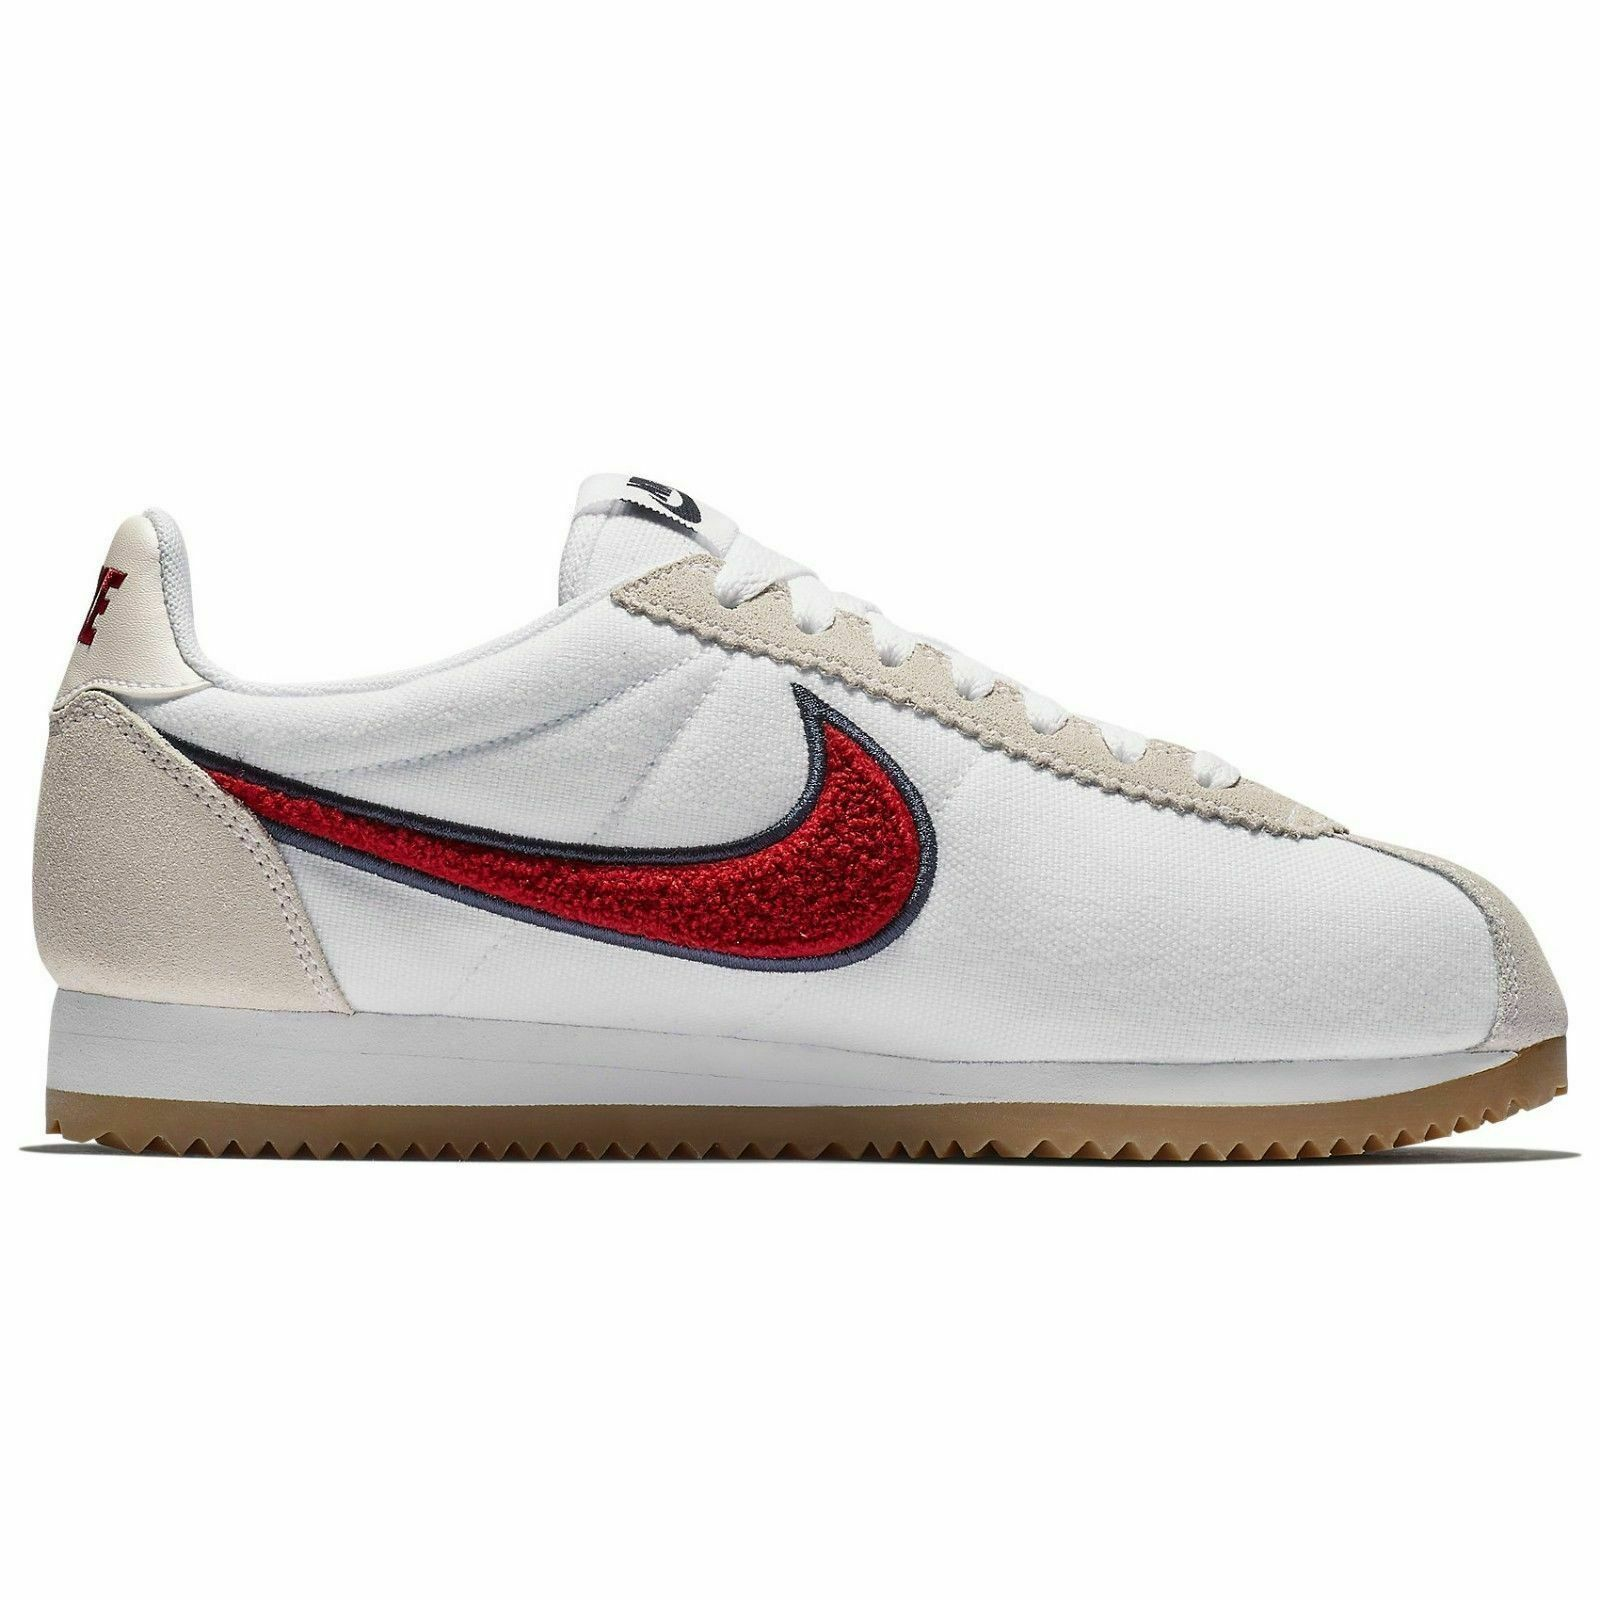 Nike Classic Cortez PREM White Red 905614-103 Casual Shoes Women's Multi Size 1